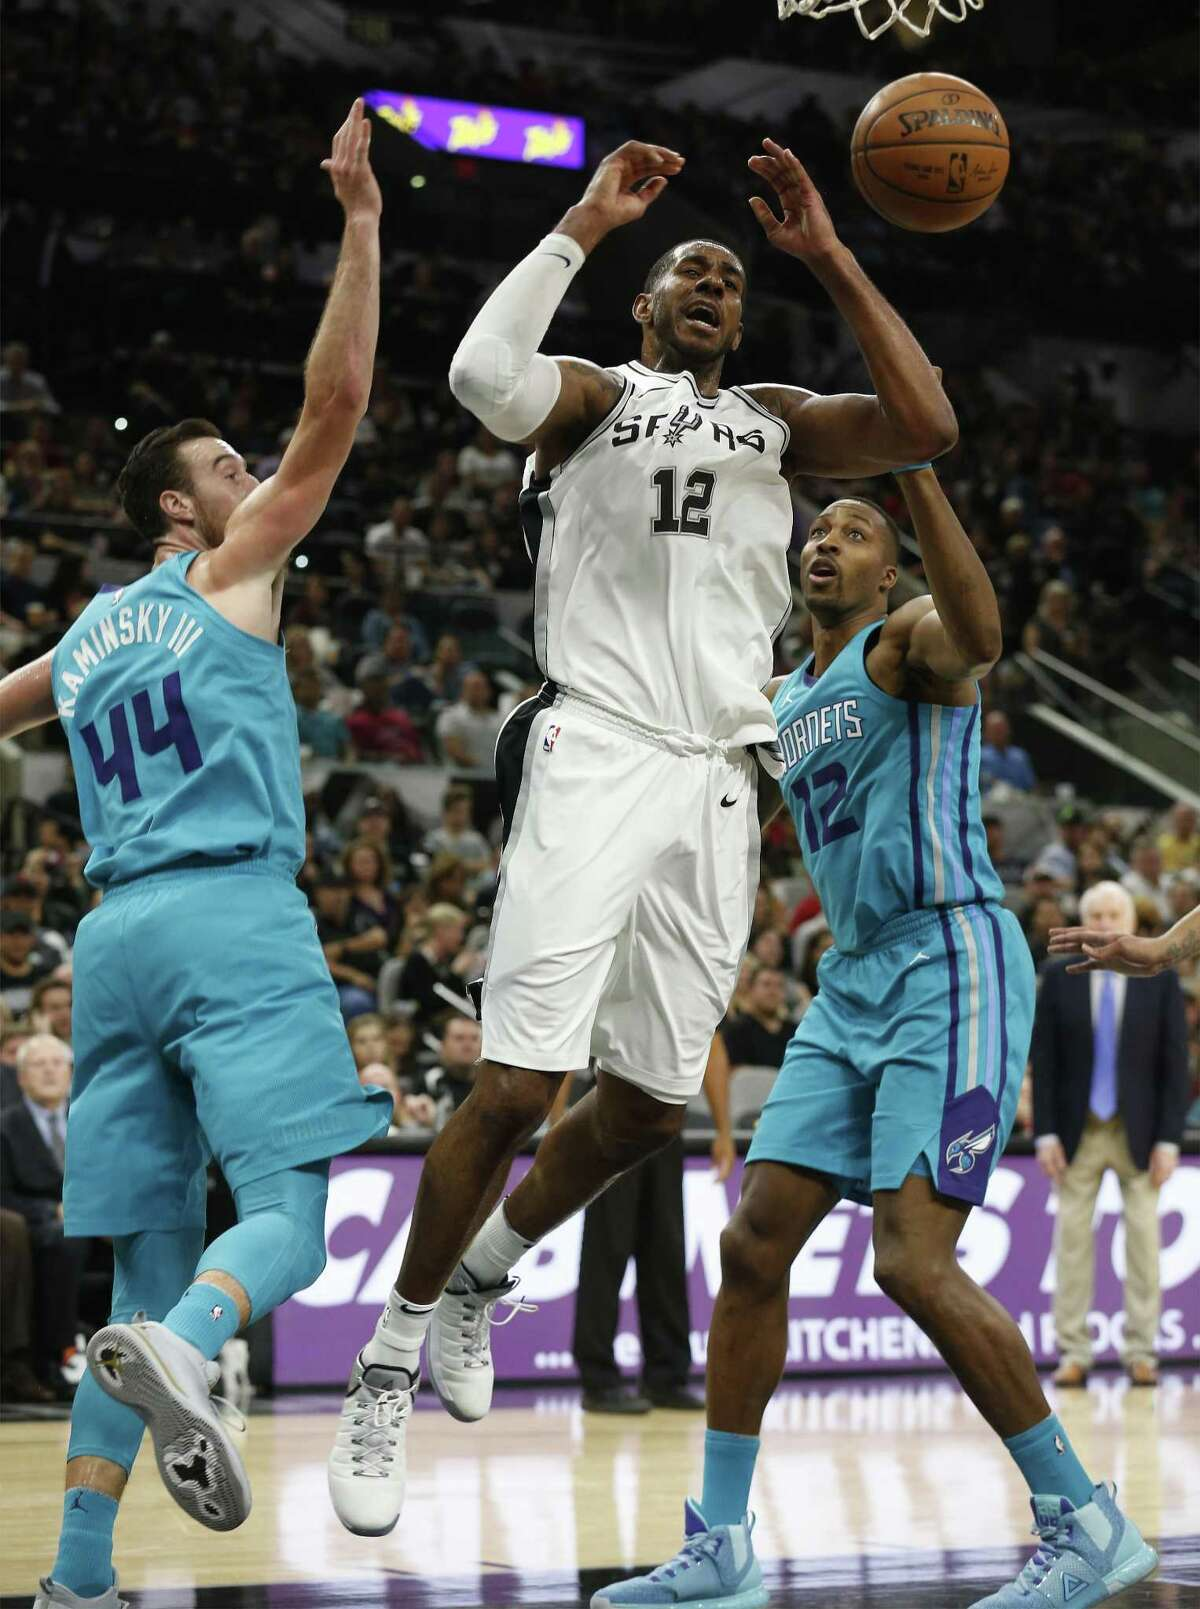 Spurs' LaMarcus Aldridge (12) gets fouled while going for a shot against Charlotte Hornets' Frank Kaminsky (44) and Dwight Howard (12) at the AT&T Center on Friday, Nov. 3, 2017. (Kin Man Hui/San Antonio Express-News)